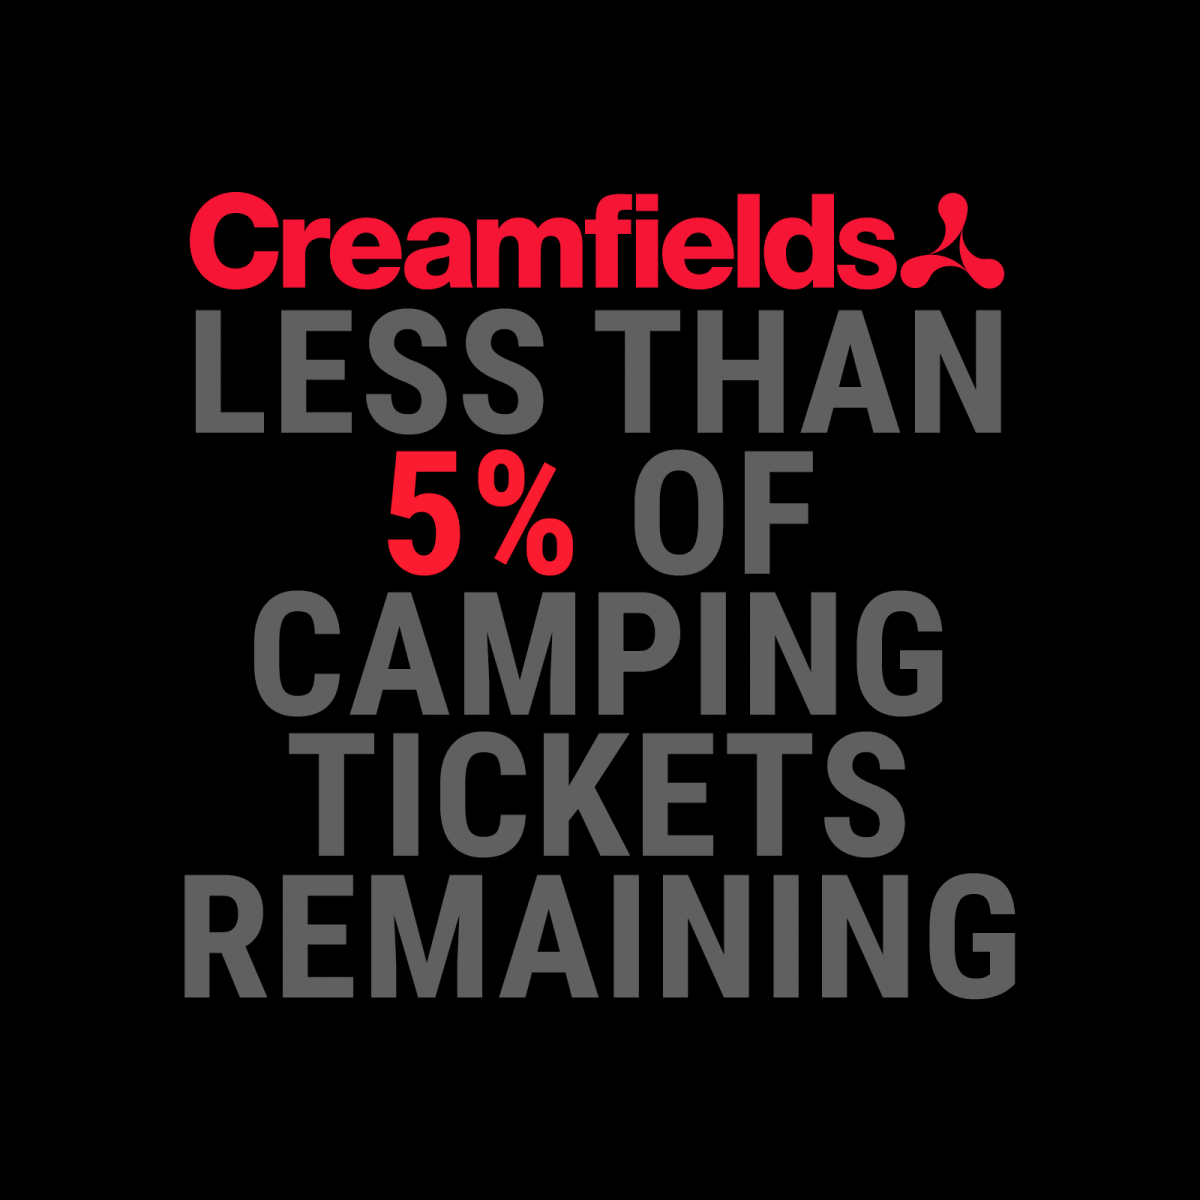 Less than 5% of ALL camping tickets remaining...